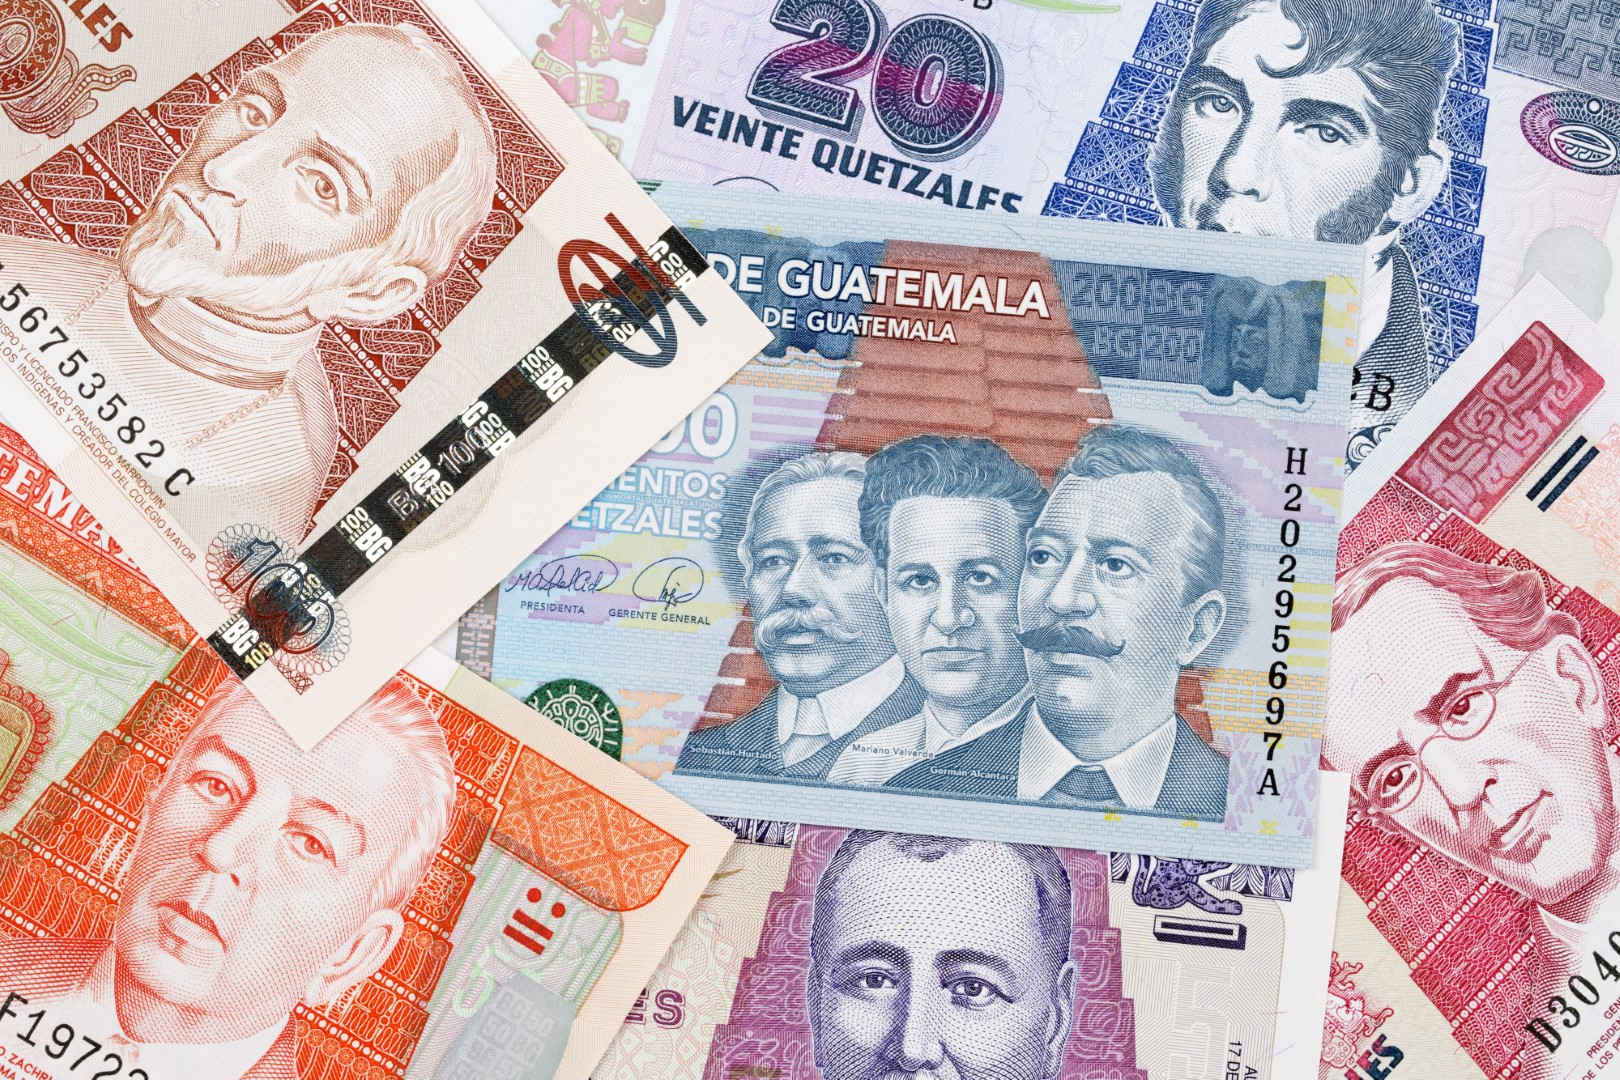 Guatemala holiday essentials including currency advice